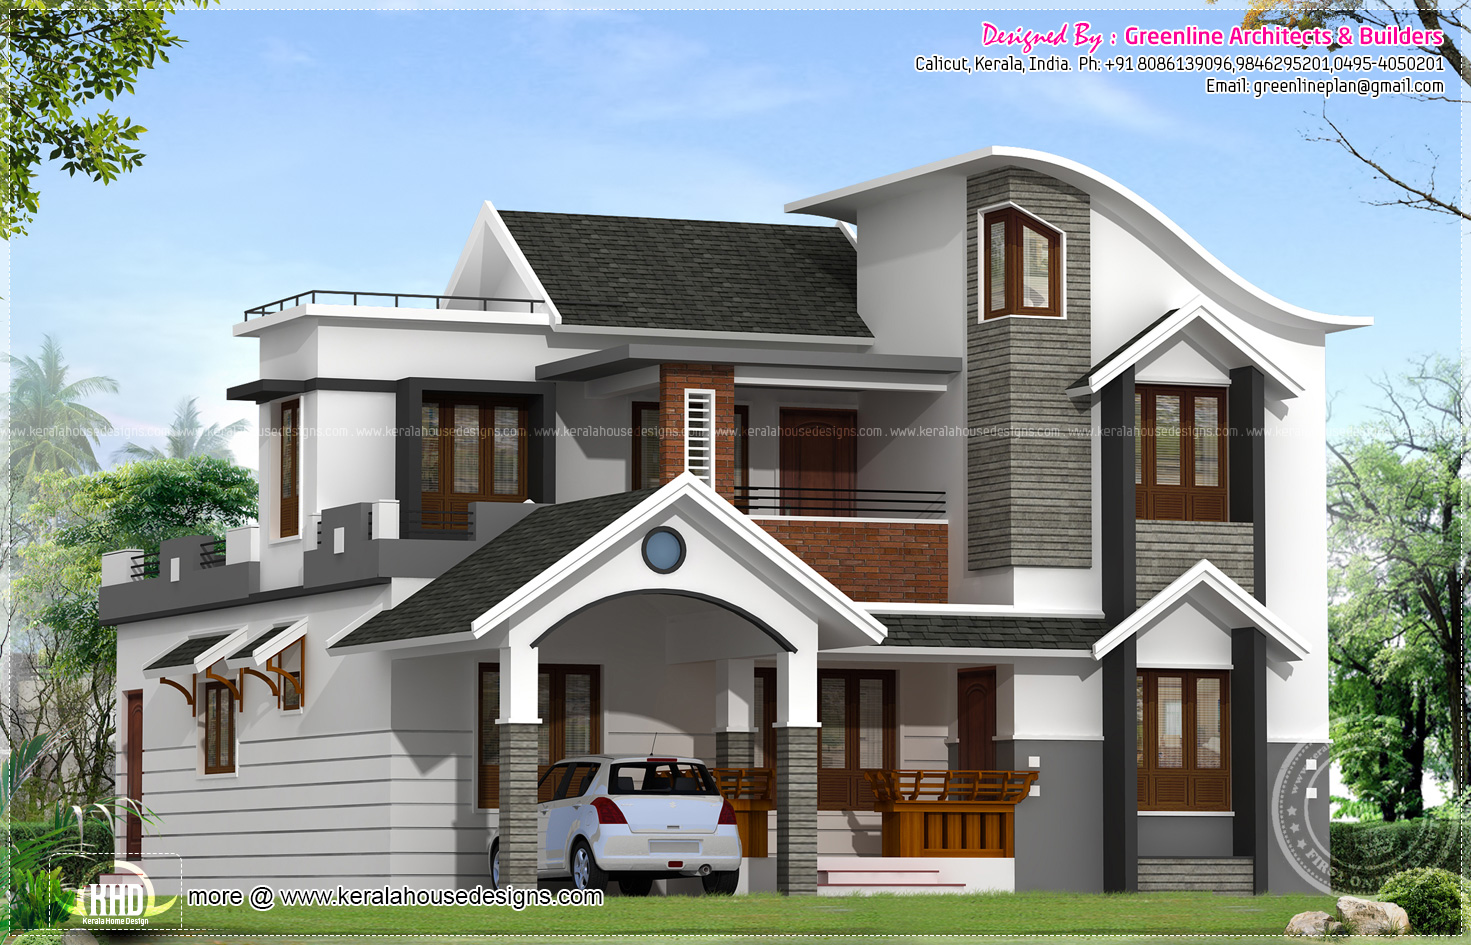 Modern house architecture in kerala kerala home design for Kerala home designs com